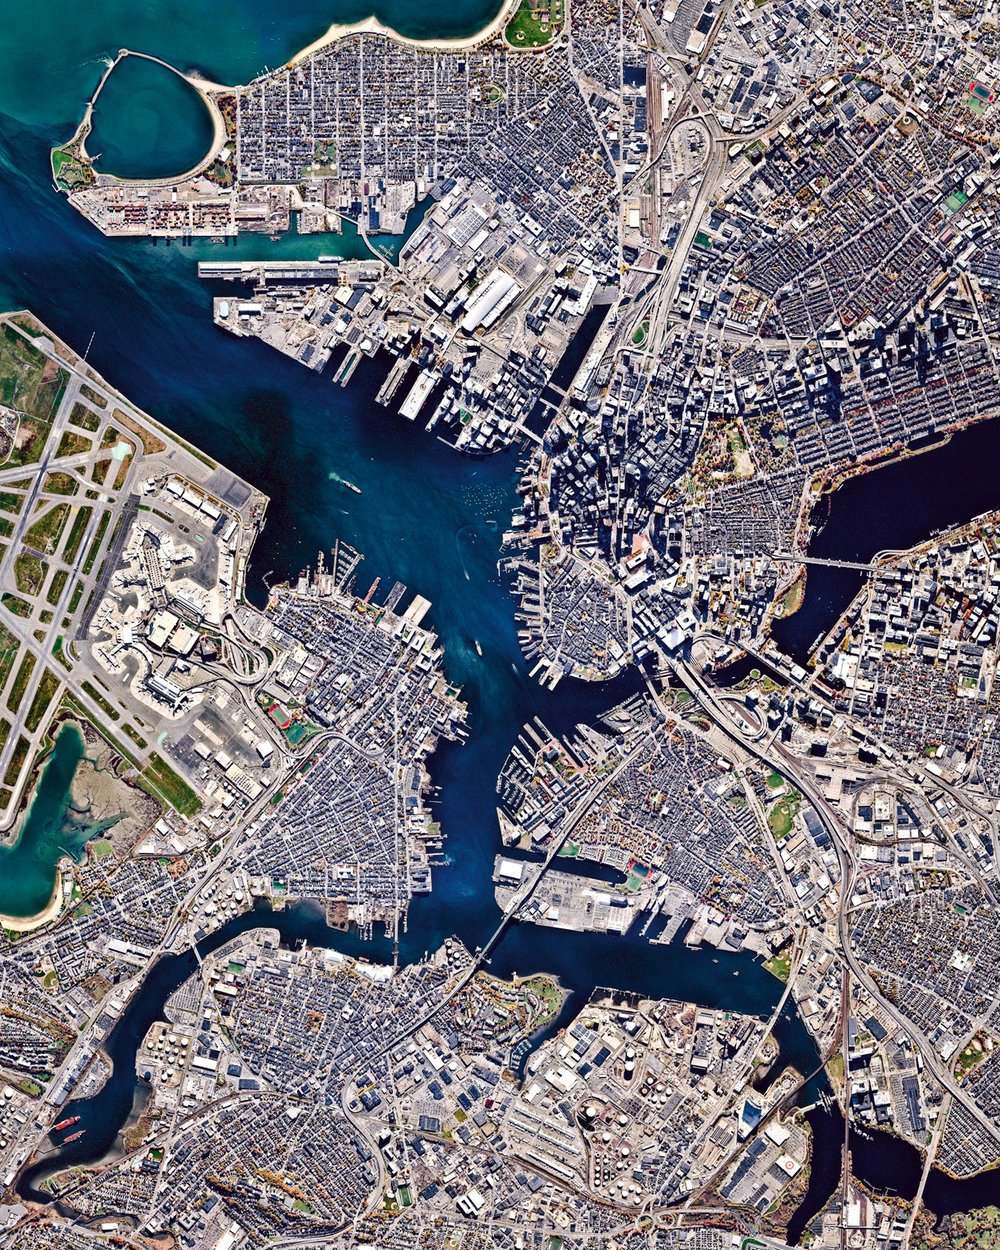 "Boston is the capital and most populous city in the Commonwealth of Massachusetts, with more than 4.6 million people in its metro area. In this Overview, three waterways can be seen flowing through the city and emptying into Boston Harbor — Chelsea Creek at left; the Mystic River in the center; and the Charles River at right.  42°21'29.0""N, 71°03'49.0""W  Source imagery: Nearmap"